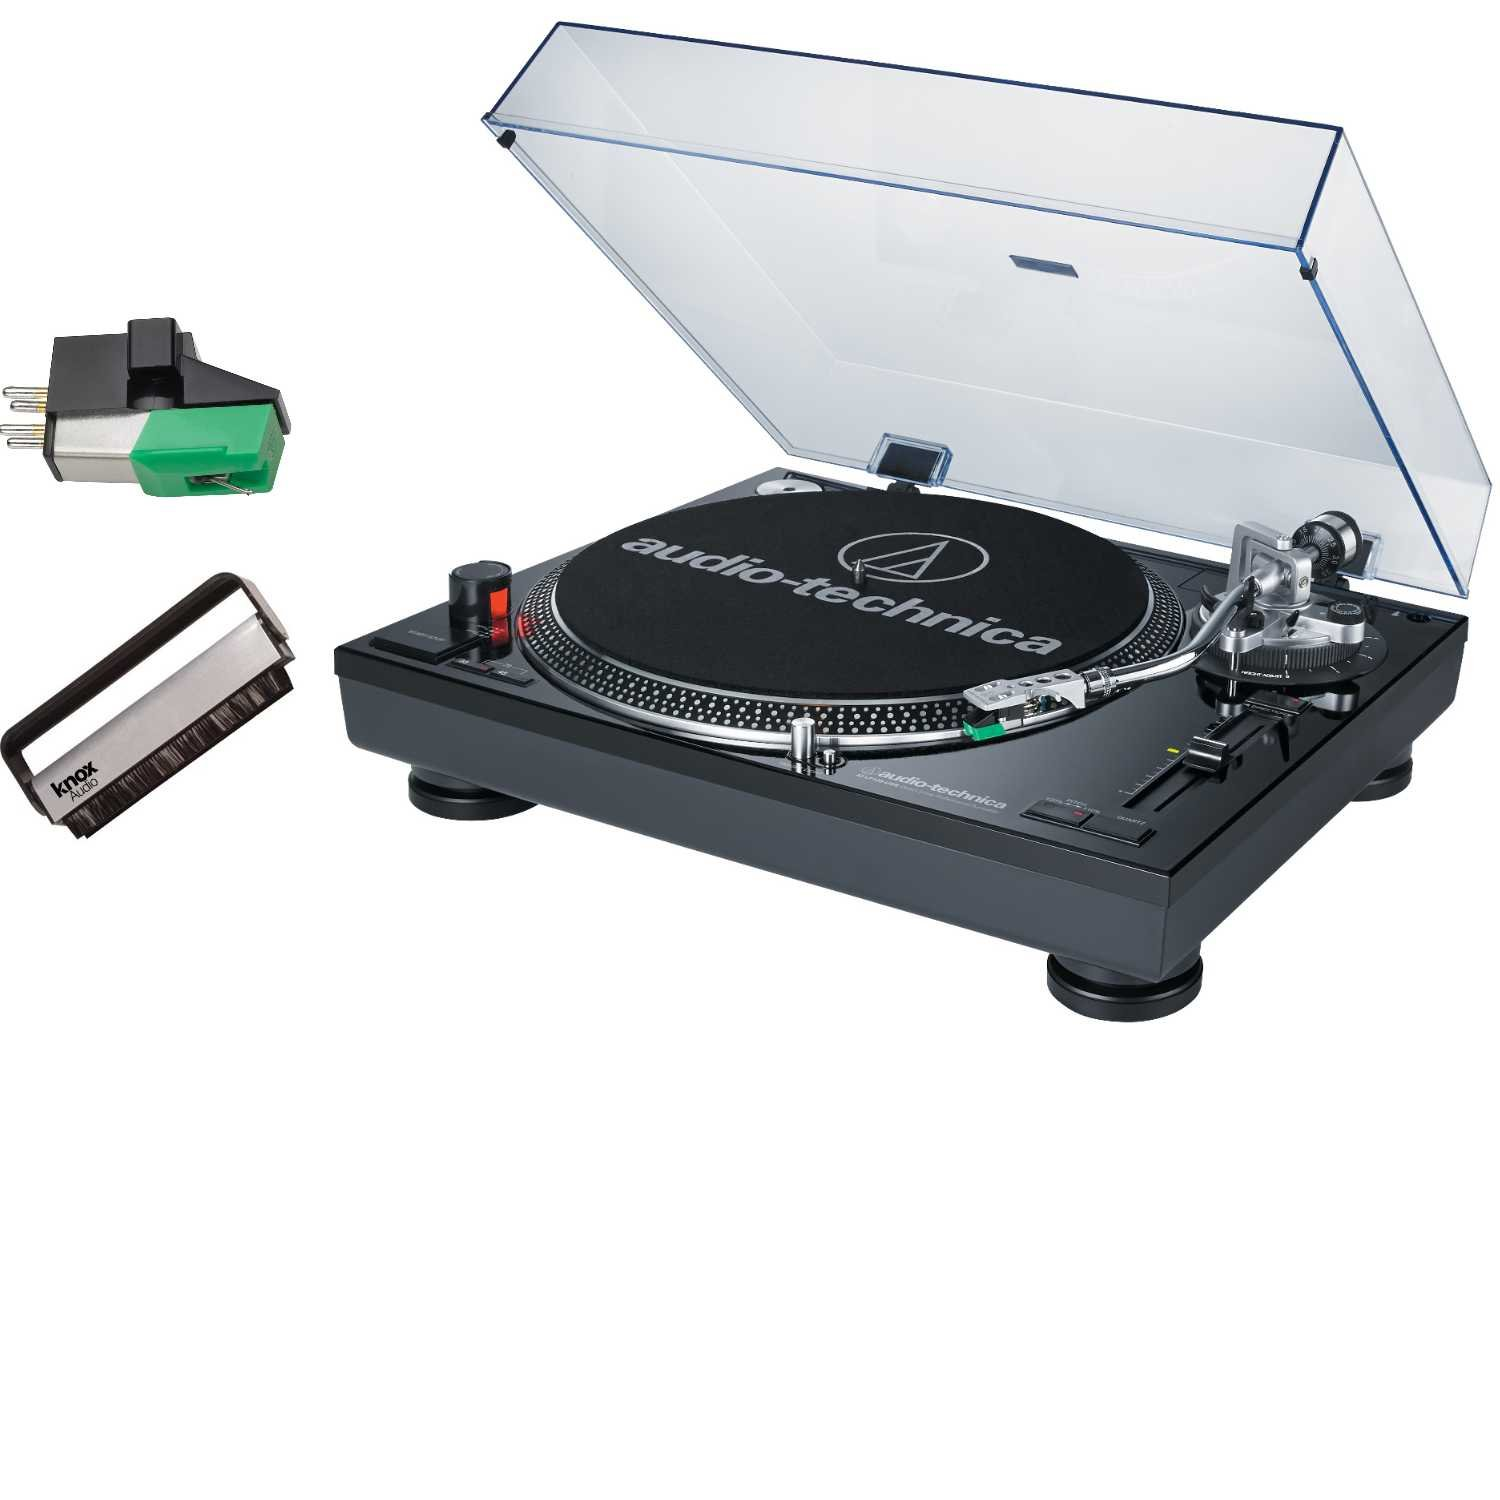 Audio Technica AT-LP120-USB Direct-Drive Professional Turntable (Black) w/ Knox Carbon Fiber Brush Cleaner & Additional AT95E Cartridge